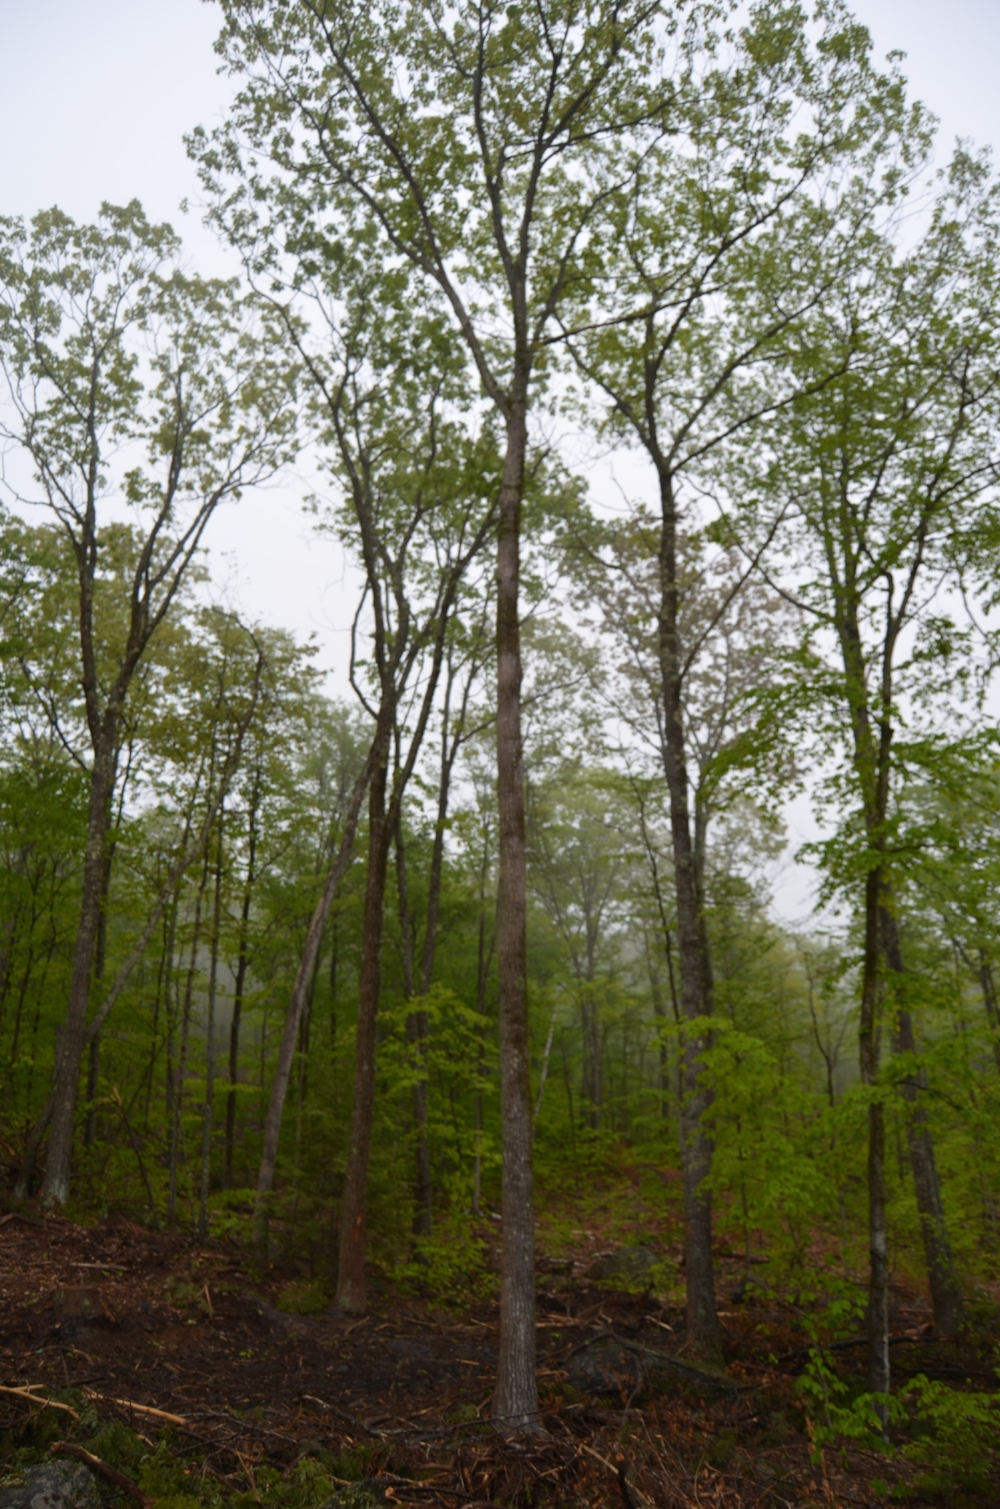 - This opening has been created so these Oak Trees will have room to grow. When they are mature, they will produce an abundance of acorns for wildlife to feed on.